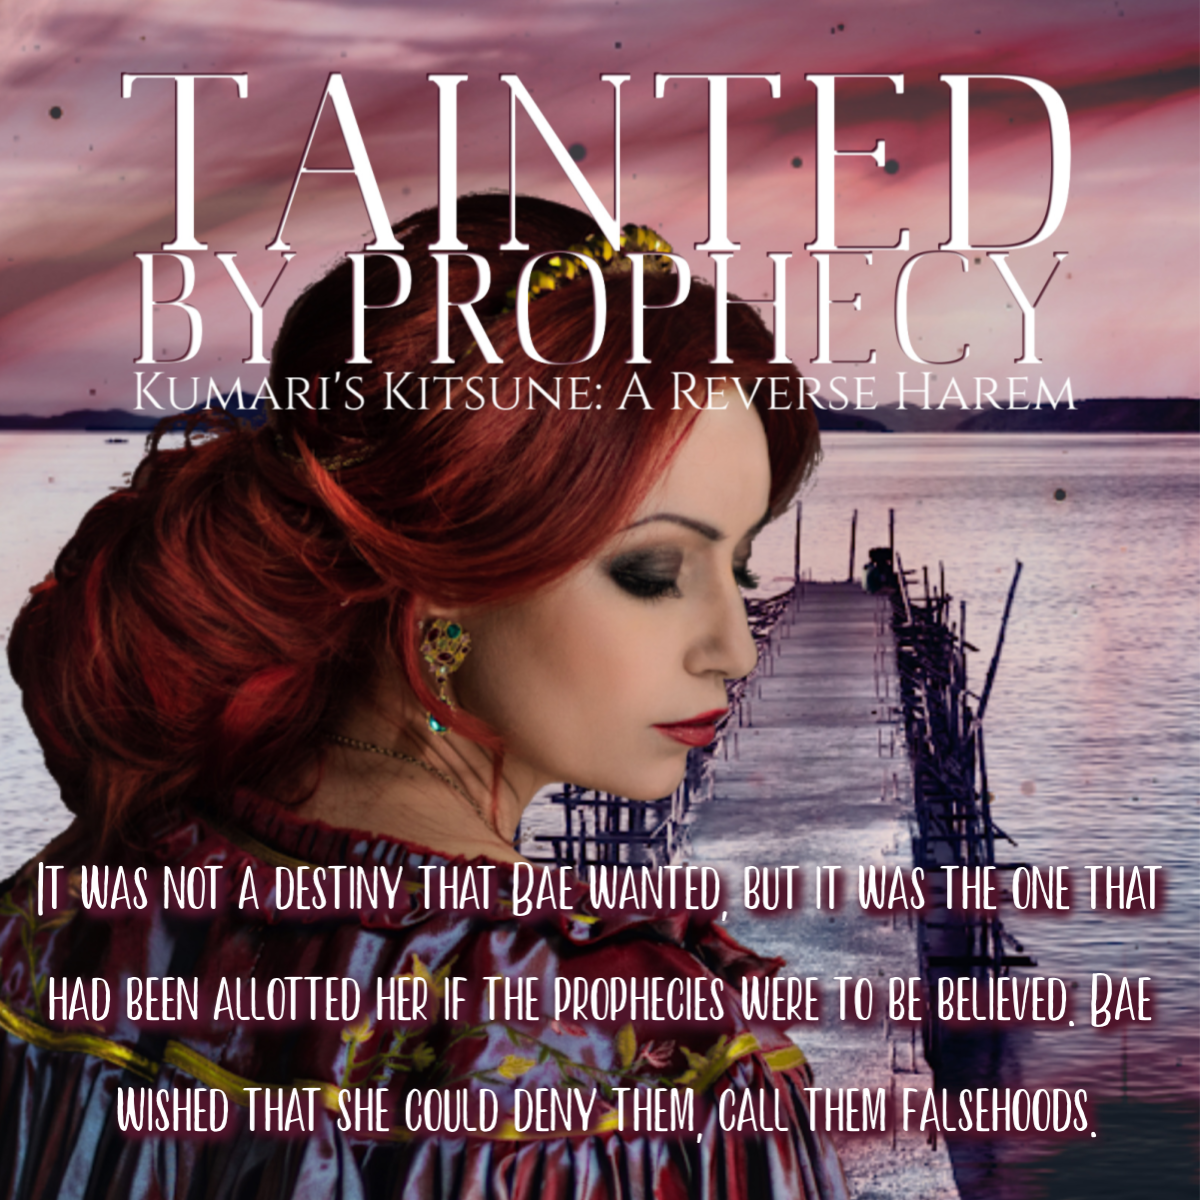 TAINTED BY PROPHECY by Hanleigh Bradley